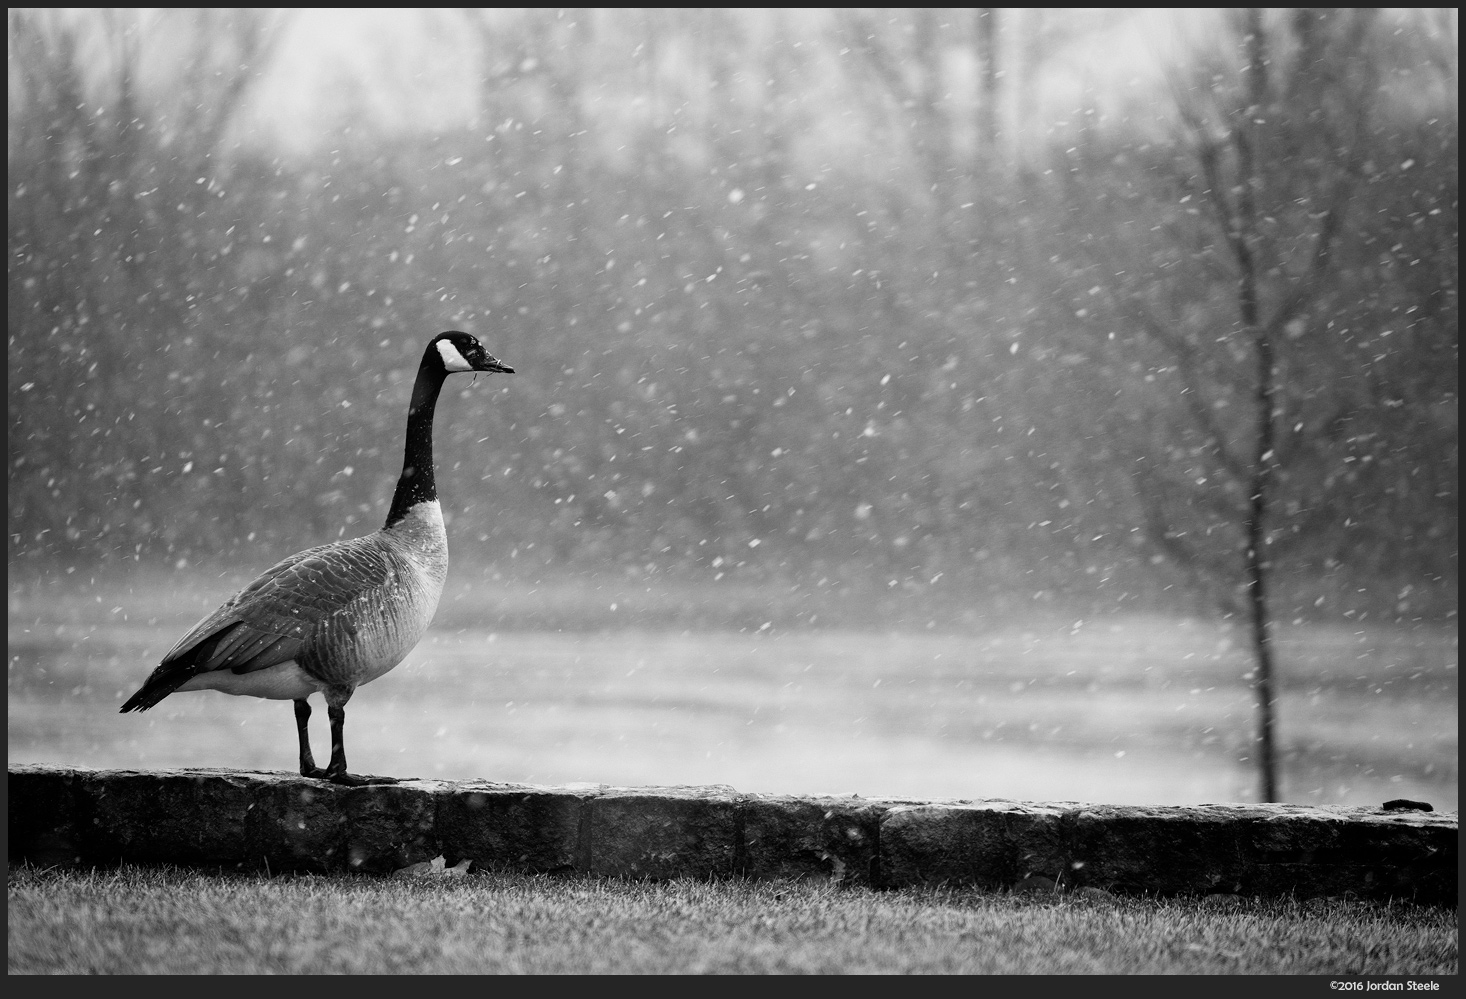 Goose in the Snow - Sony A7 II with Sony FE 70-200mm f/4 G OSS @